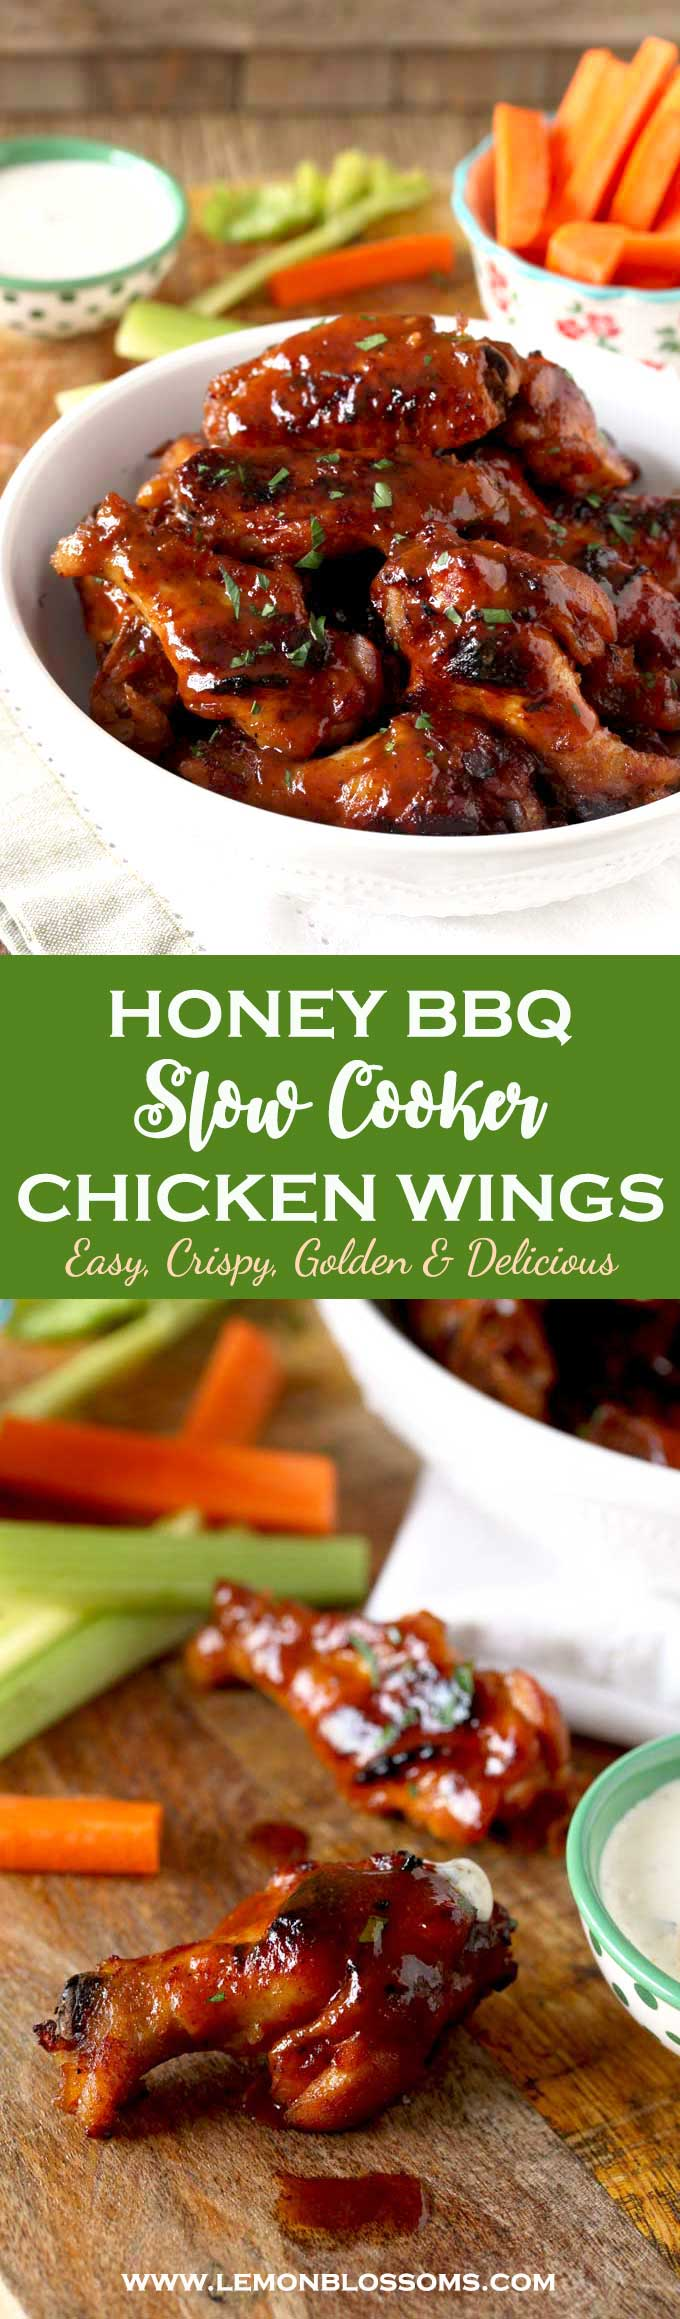 These Slow Cooker Chicken Wings are cooked in a tasty Honey BBQ sauce until fall off the bone tender. Quickly broiled until golden then served smothered in more sauce! This easy appetizer will be the hit at your next party or game night! #appetizer #gamenight #chickenwings #crockpot #slowcooker